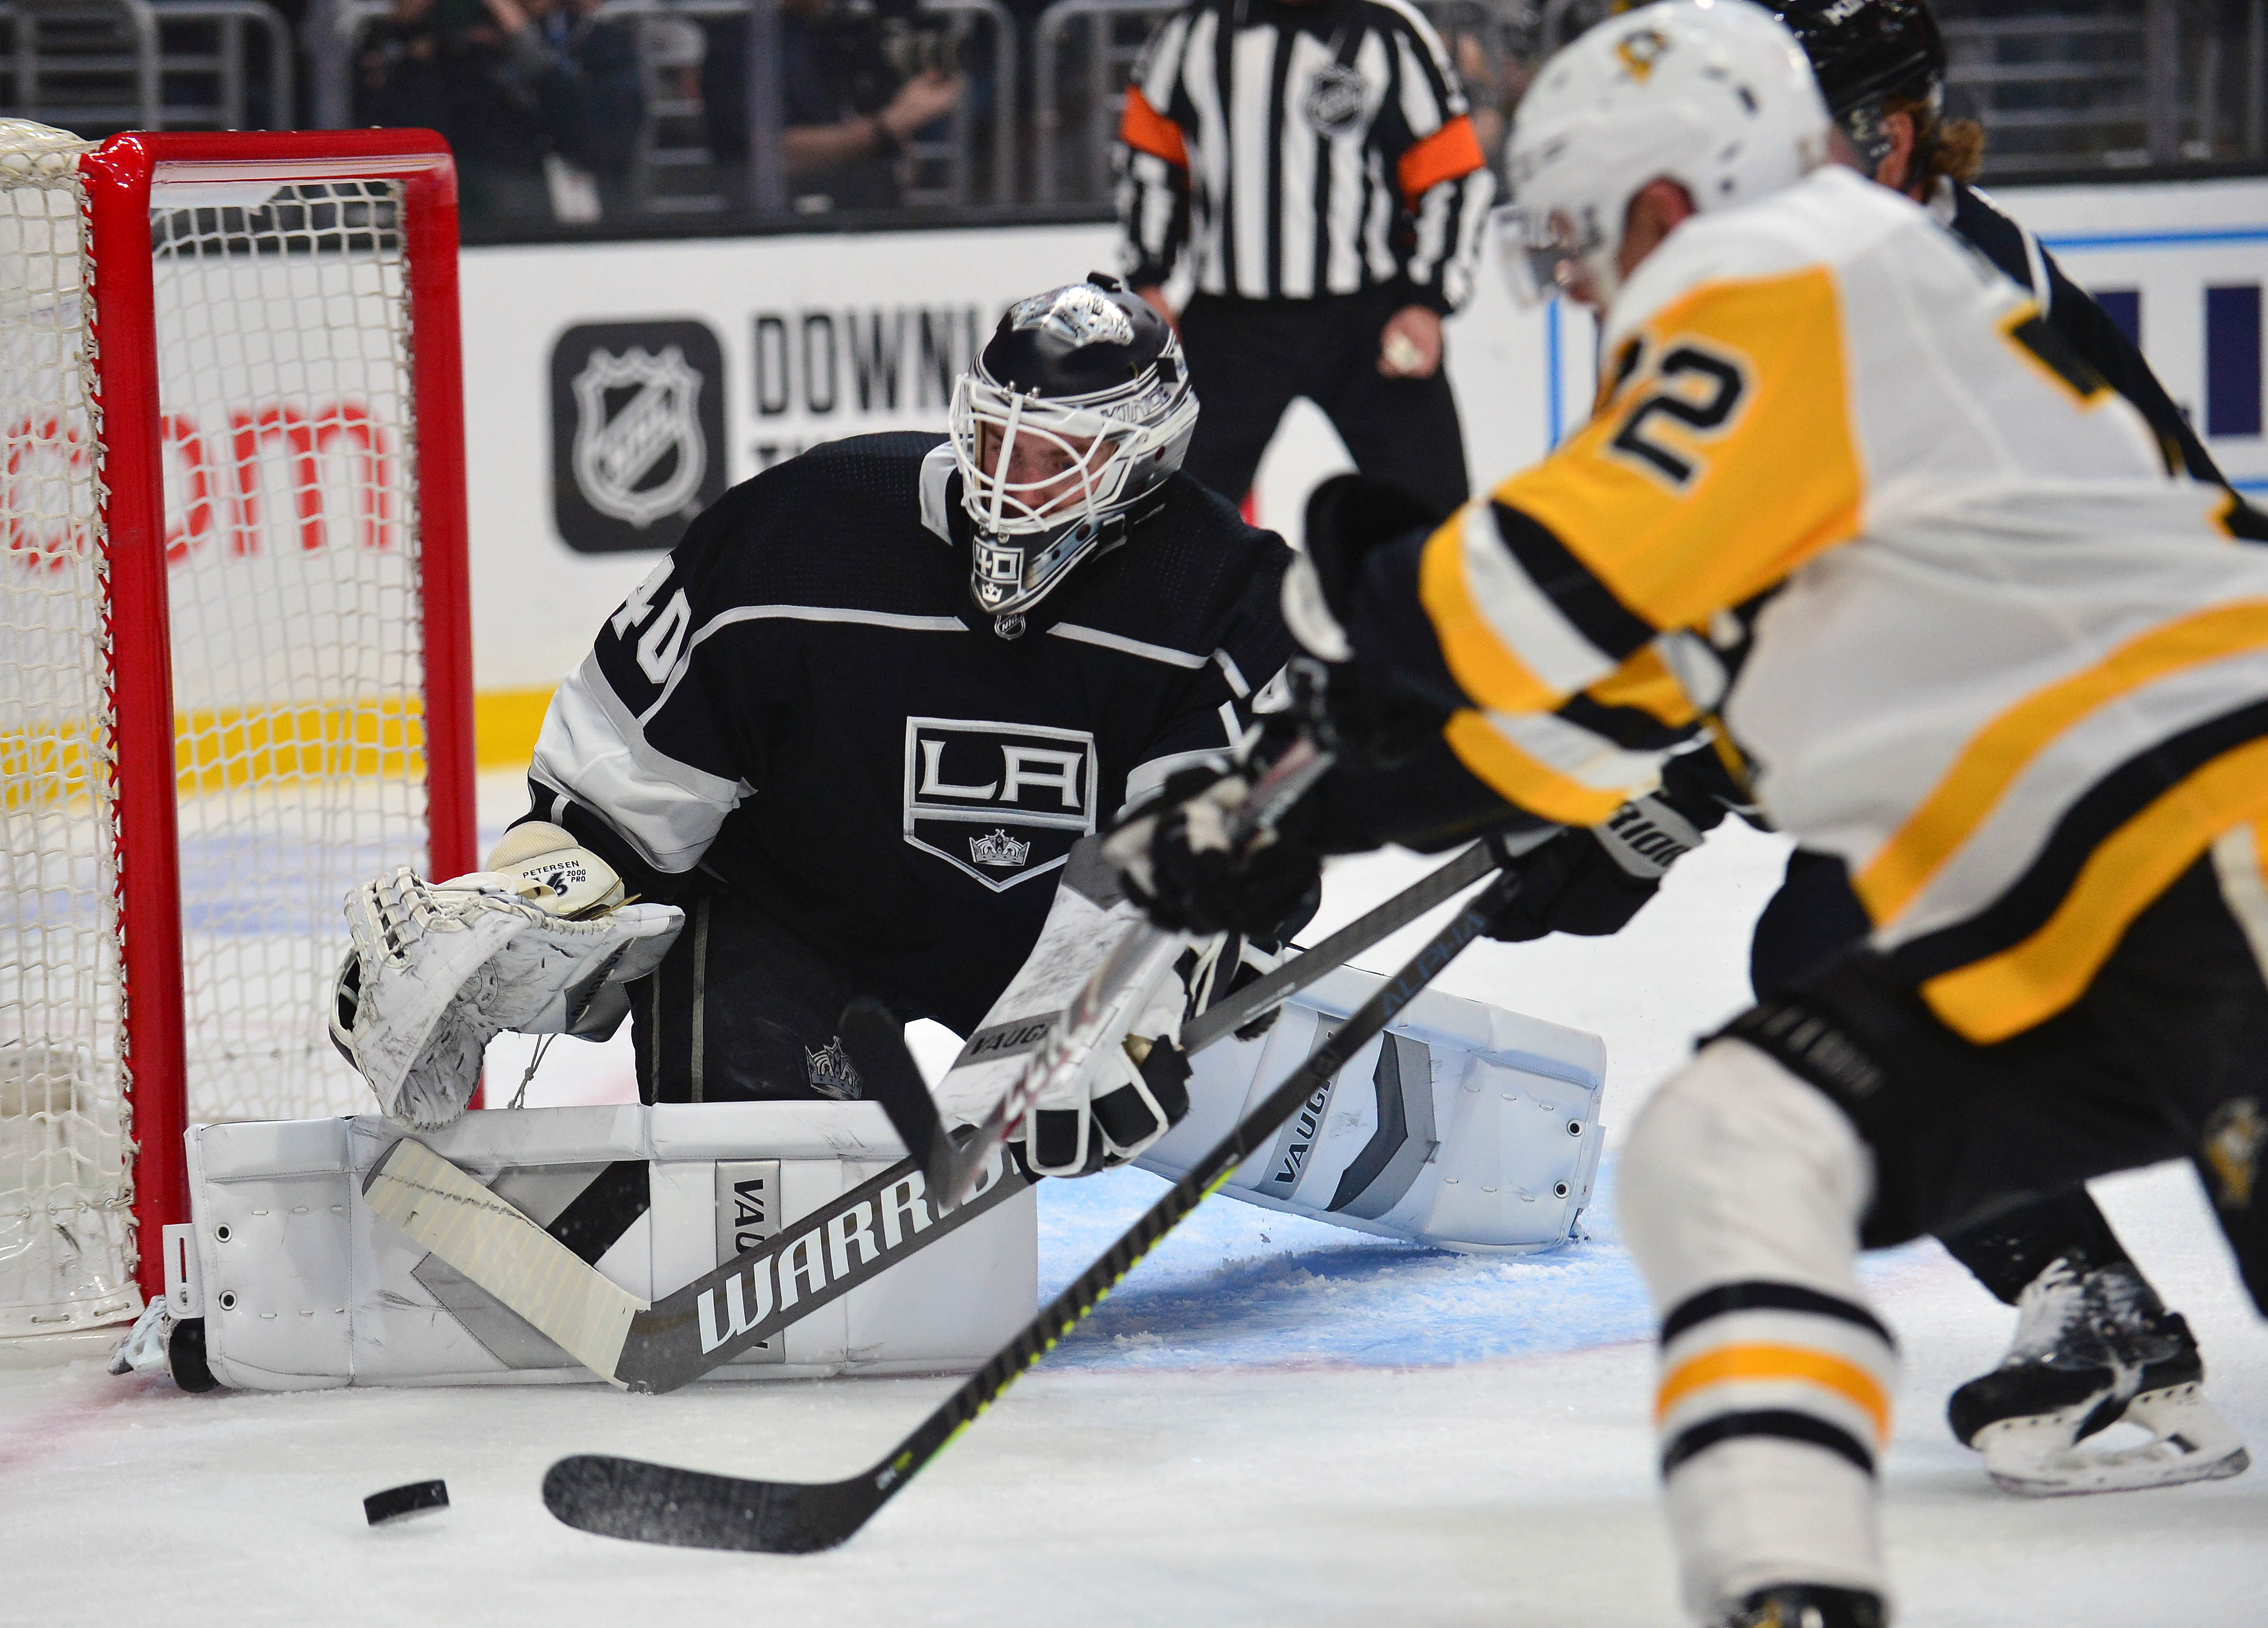 February 26, 2020; Los Angeles, California, USA; Los Angeles Kings goaltender Calvin Petersen (40) blocks a shot against Pittsburgh Penguins center Patrick Marleau (12) during the first period at Staples Center.